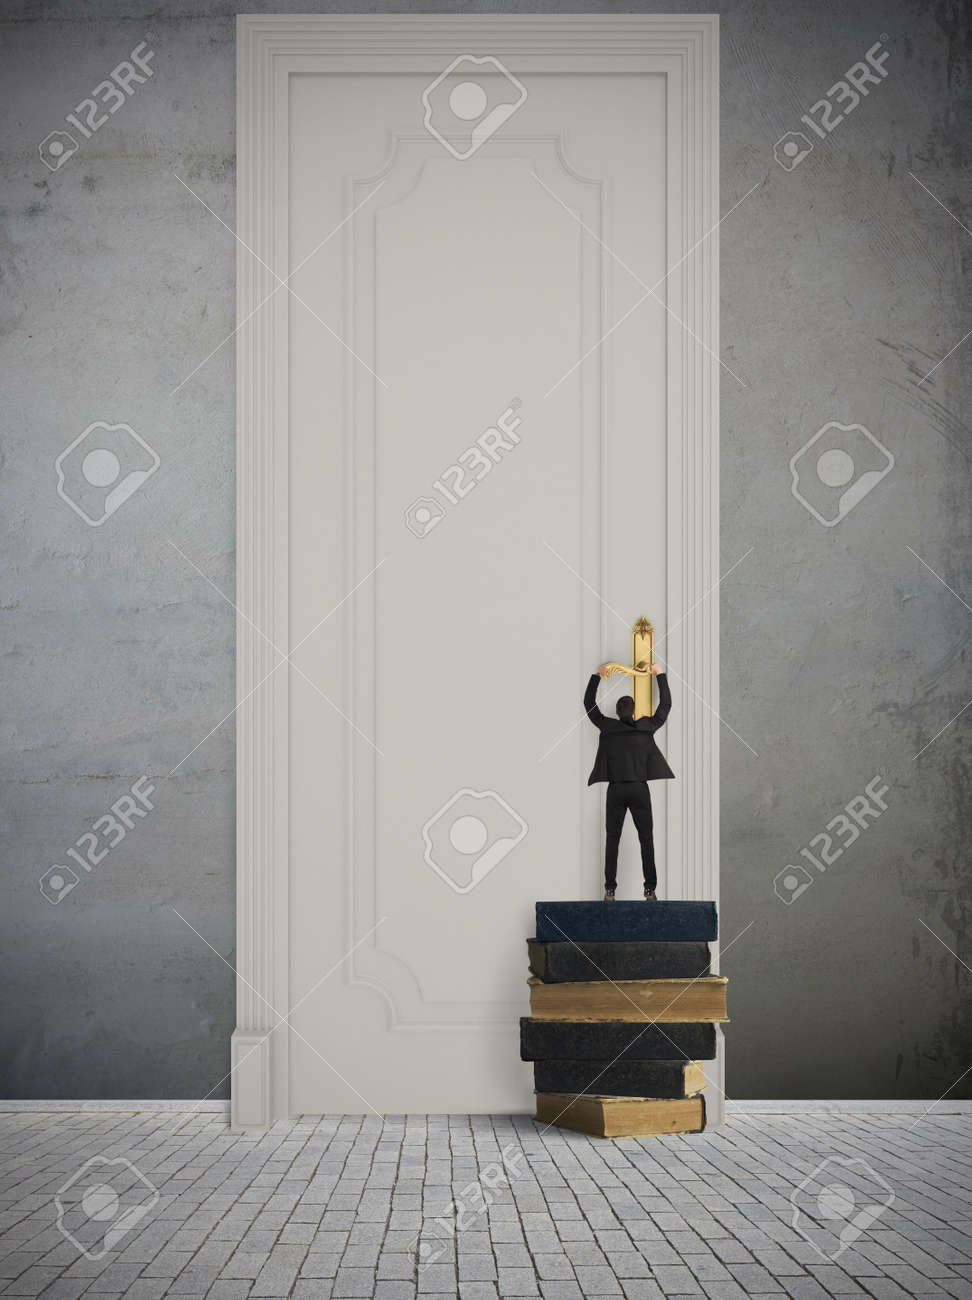 Concept of big opportunity in business Stock Photo - 20871702